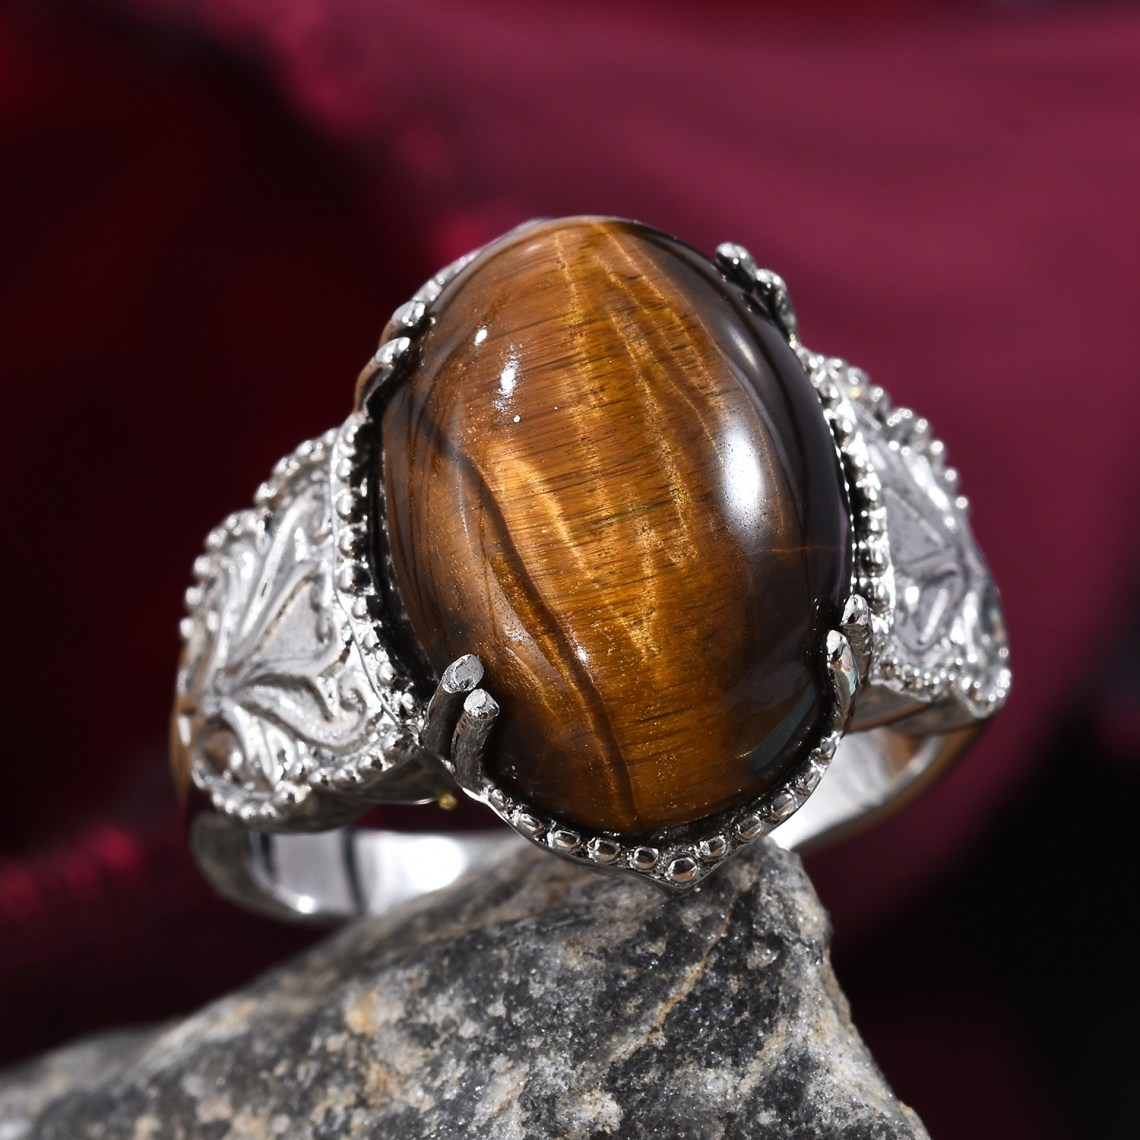 Silver ring featuring prominent tiger's eye gemstone.